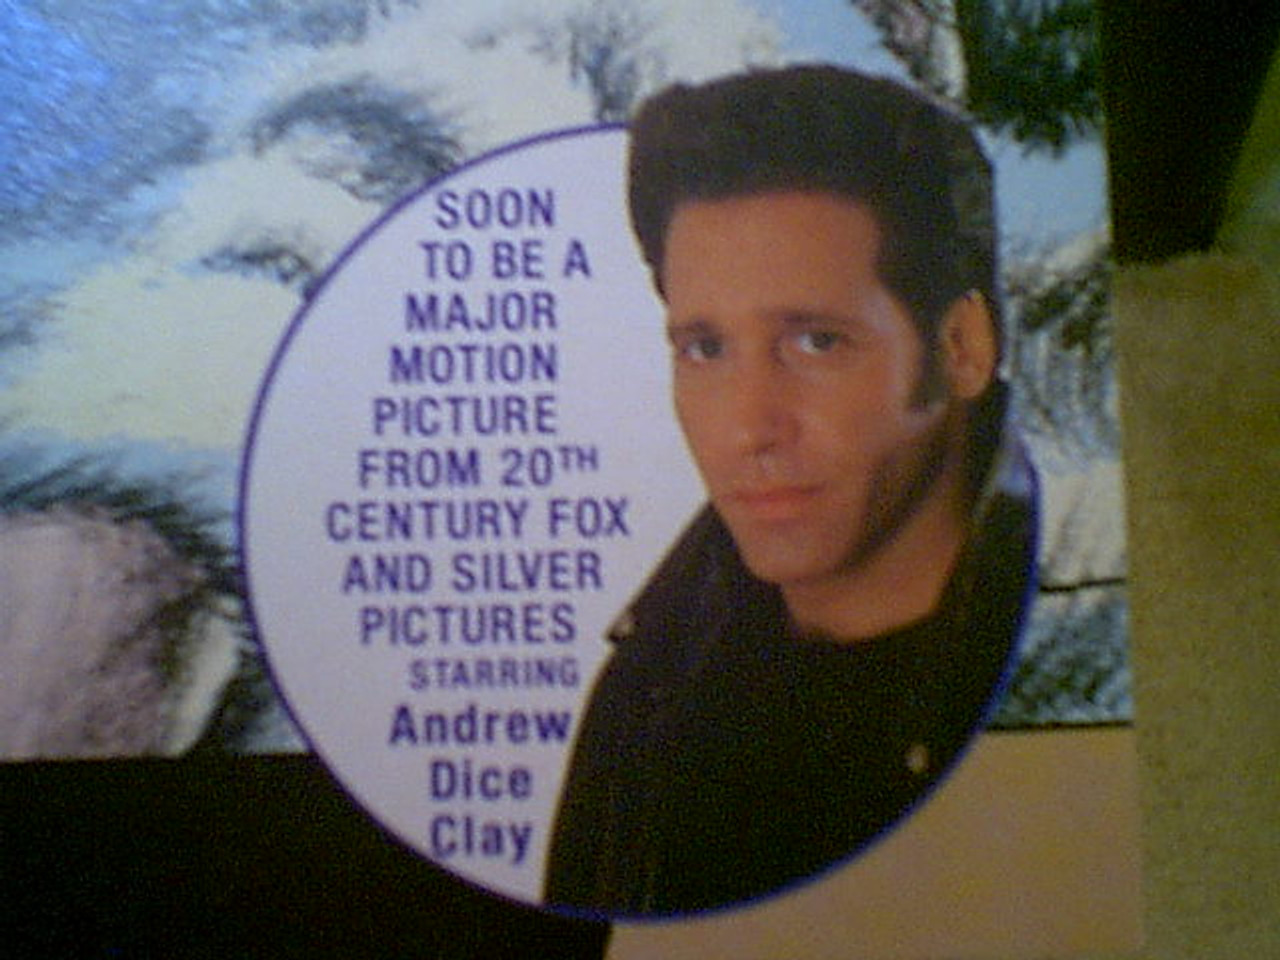 """Clay, Andrew Dice """"The Adventures Of Ford Fairlane"""" No. 2 1990 Comic Book Signed Autograph Illustrated"""